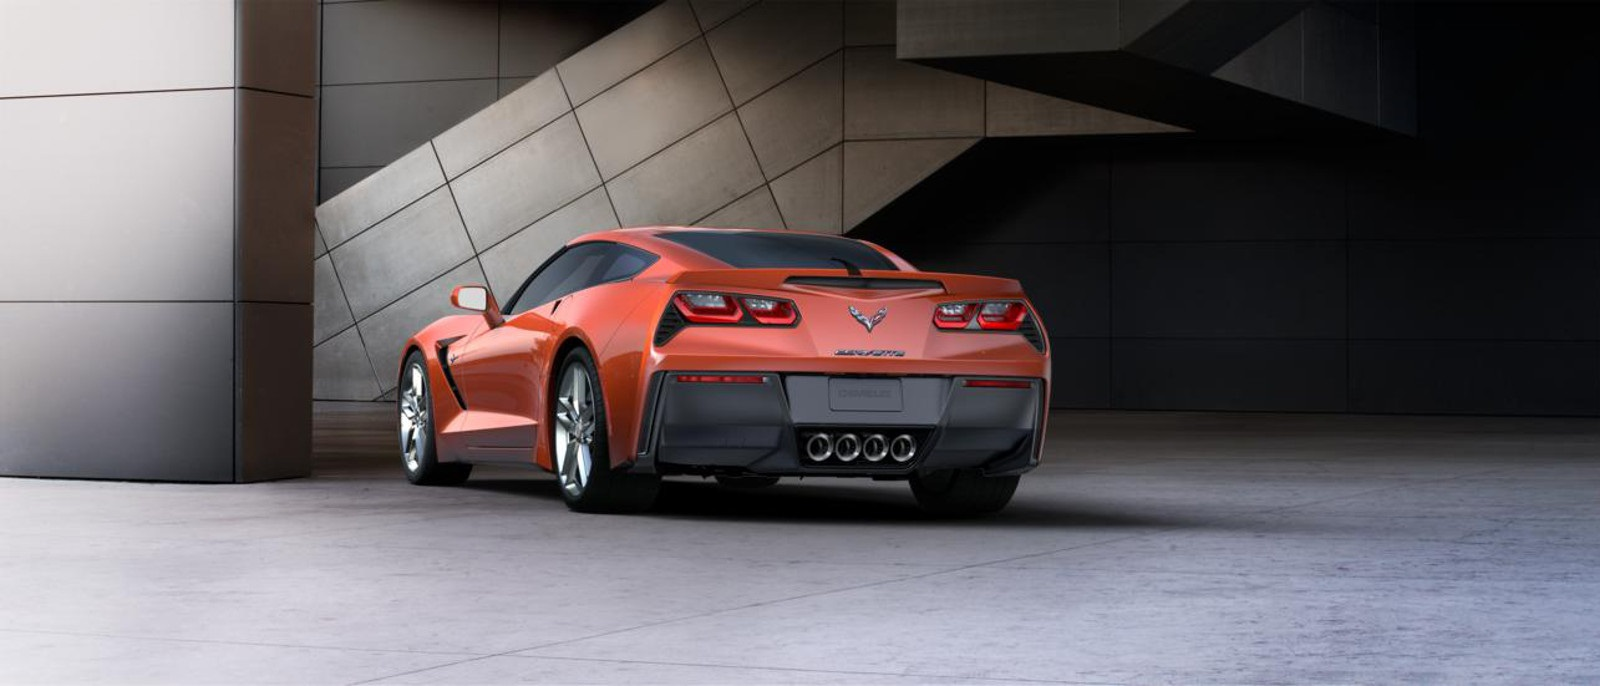 2016 Chevy Corvette Stingray Z51 3LT Coupe Rear